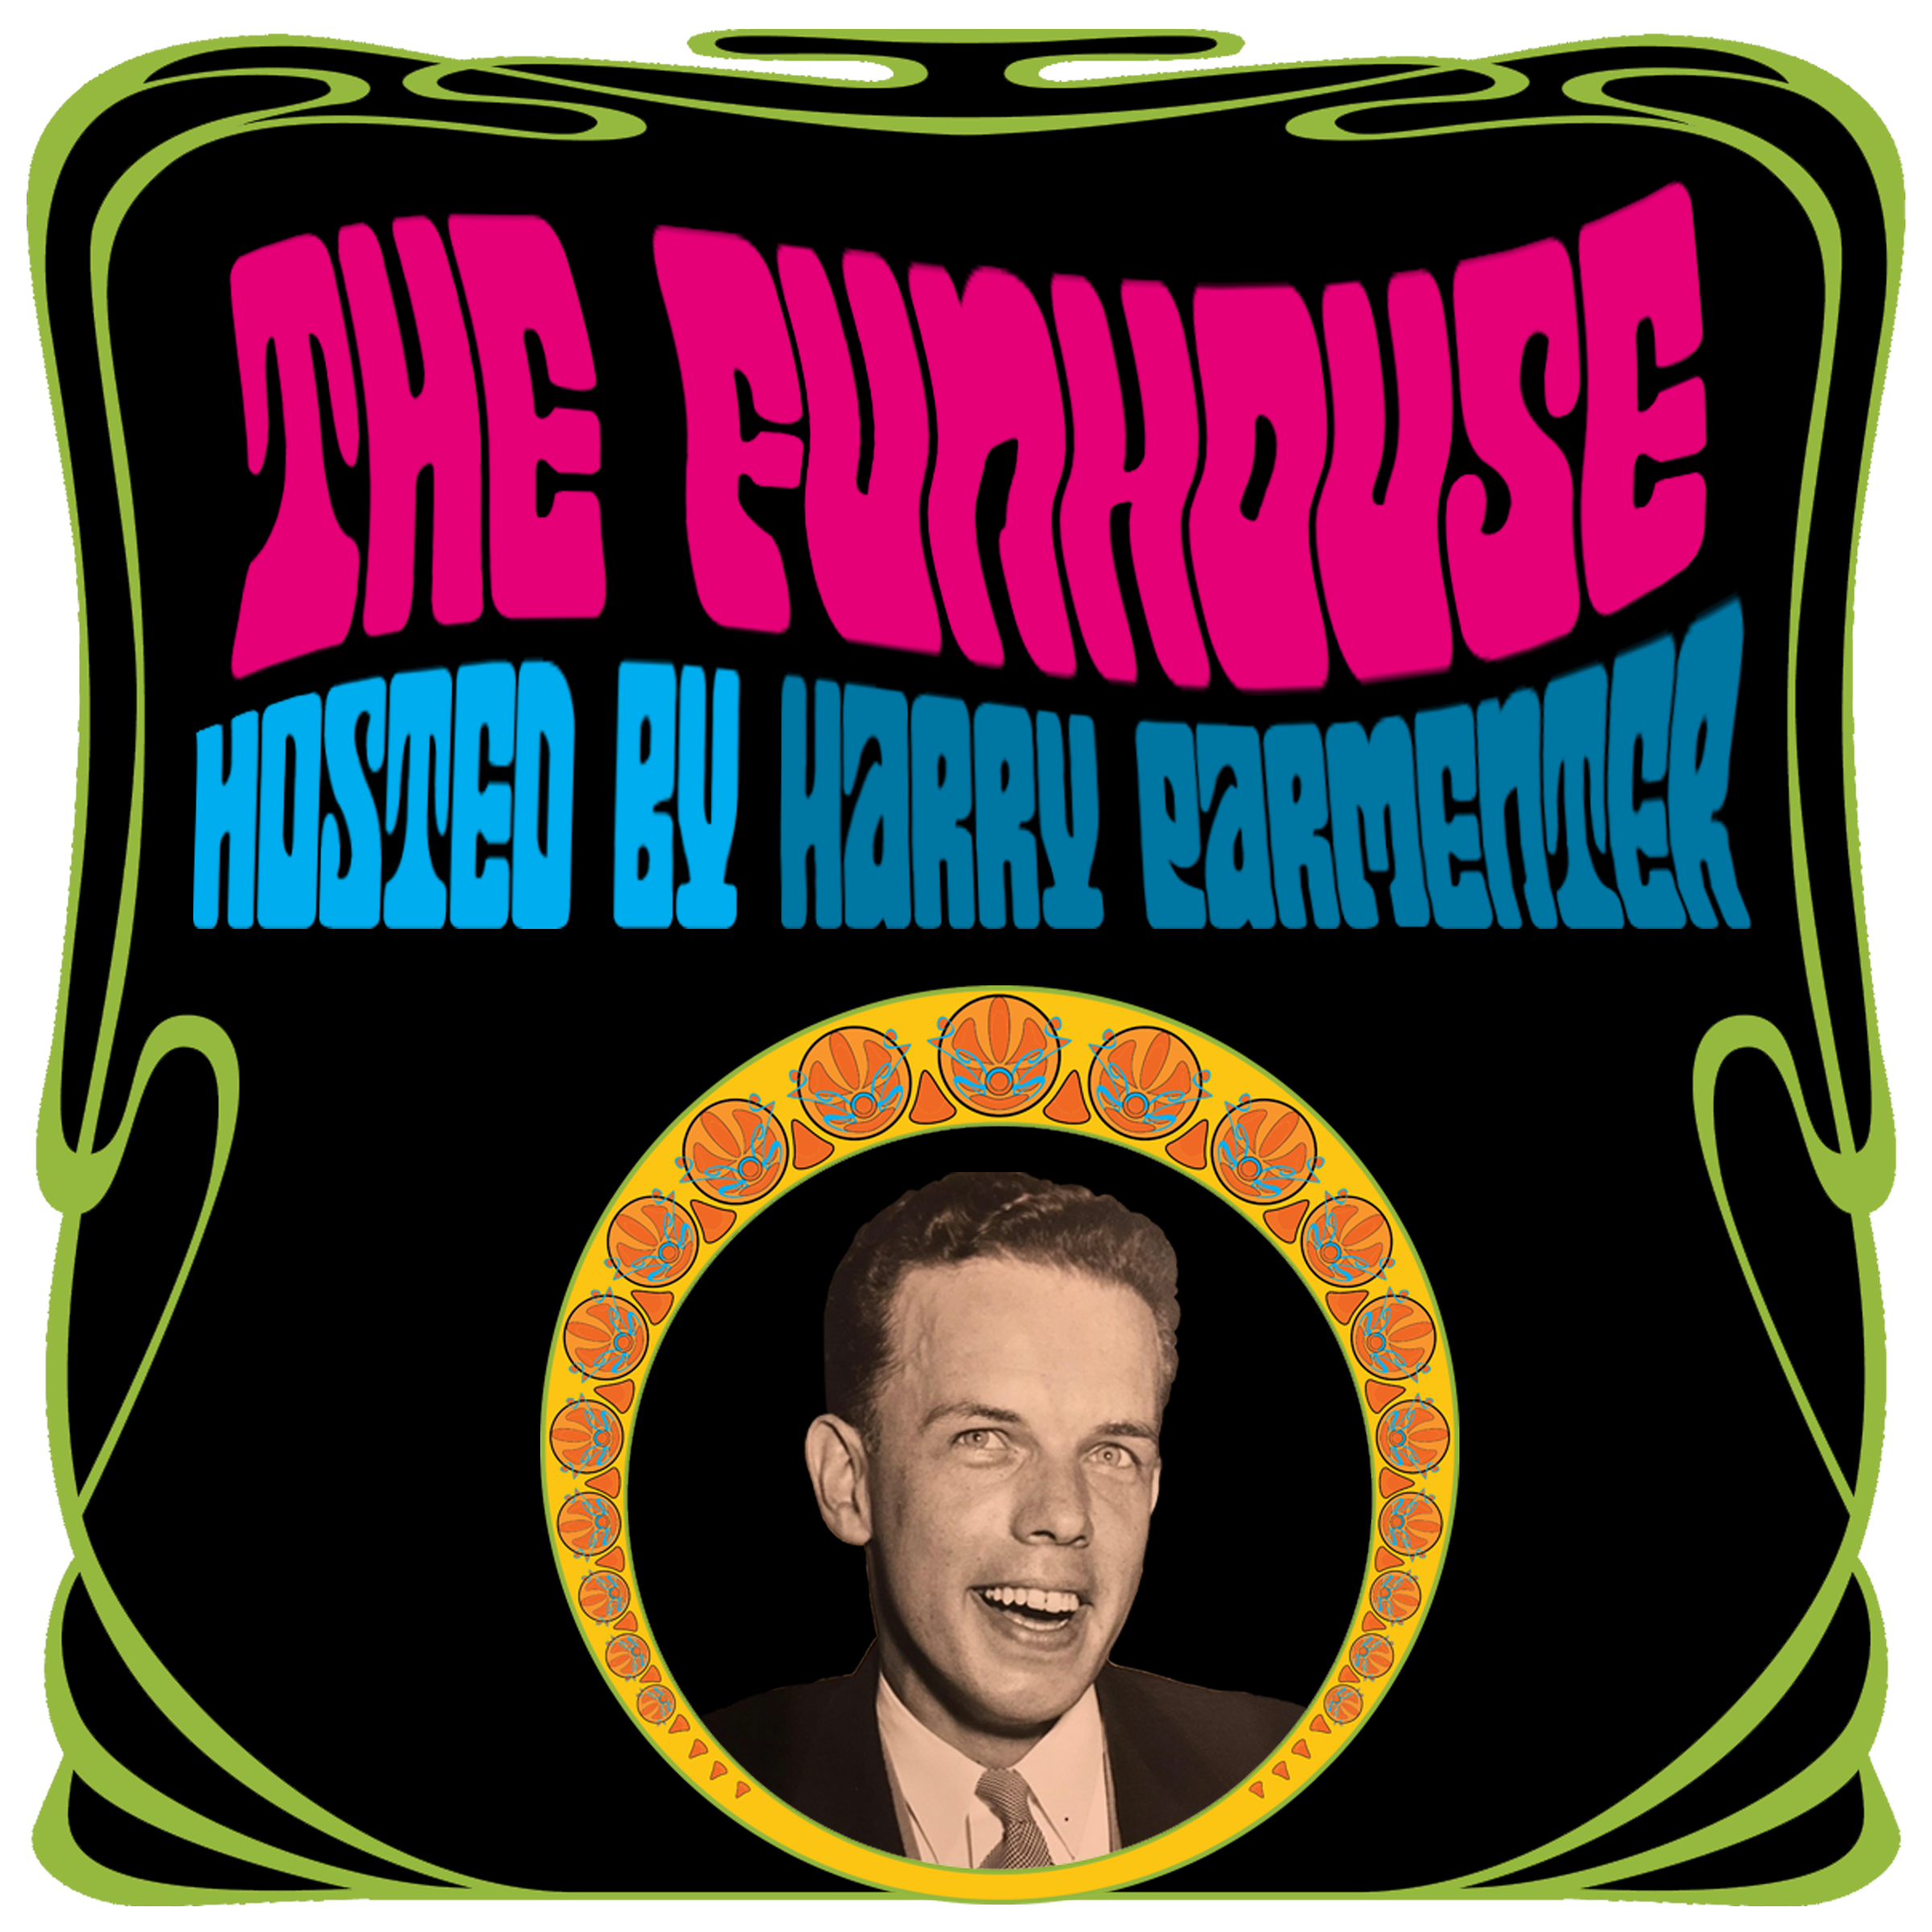 Caption: Join Harry Parmenter for sixty minutes of mayhem in THE FUNHOUSE , Credit: Emeline Haston